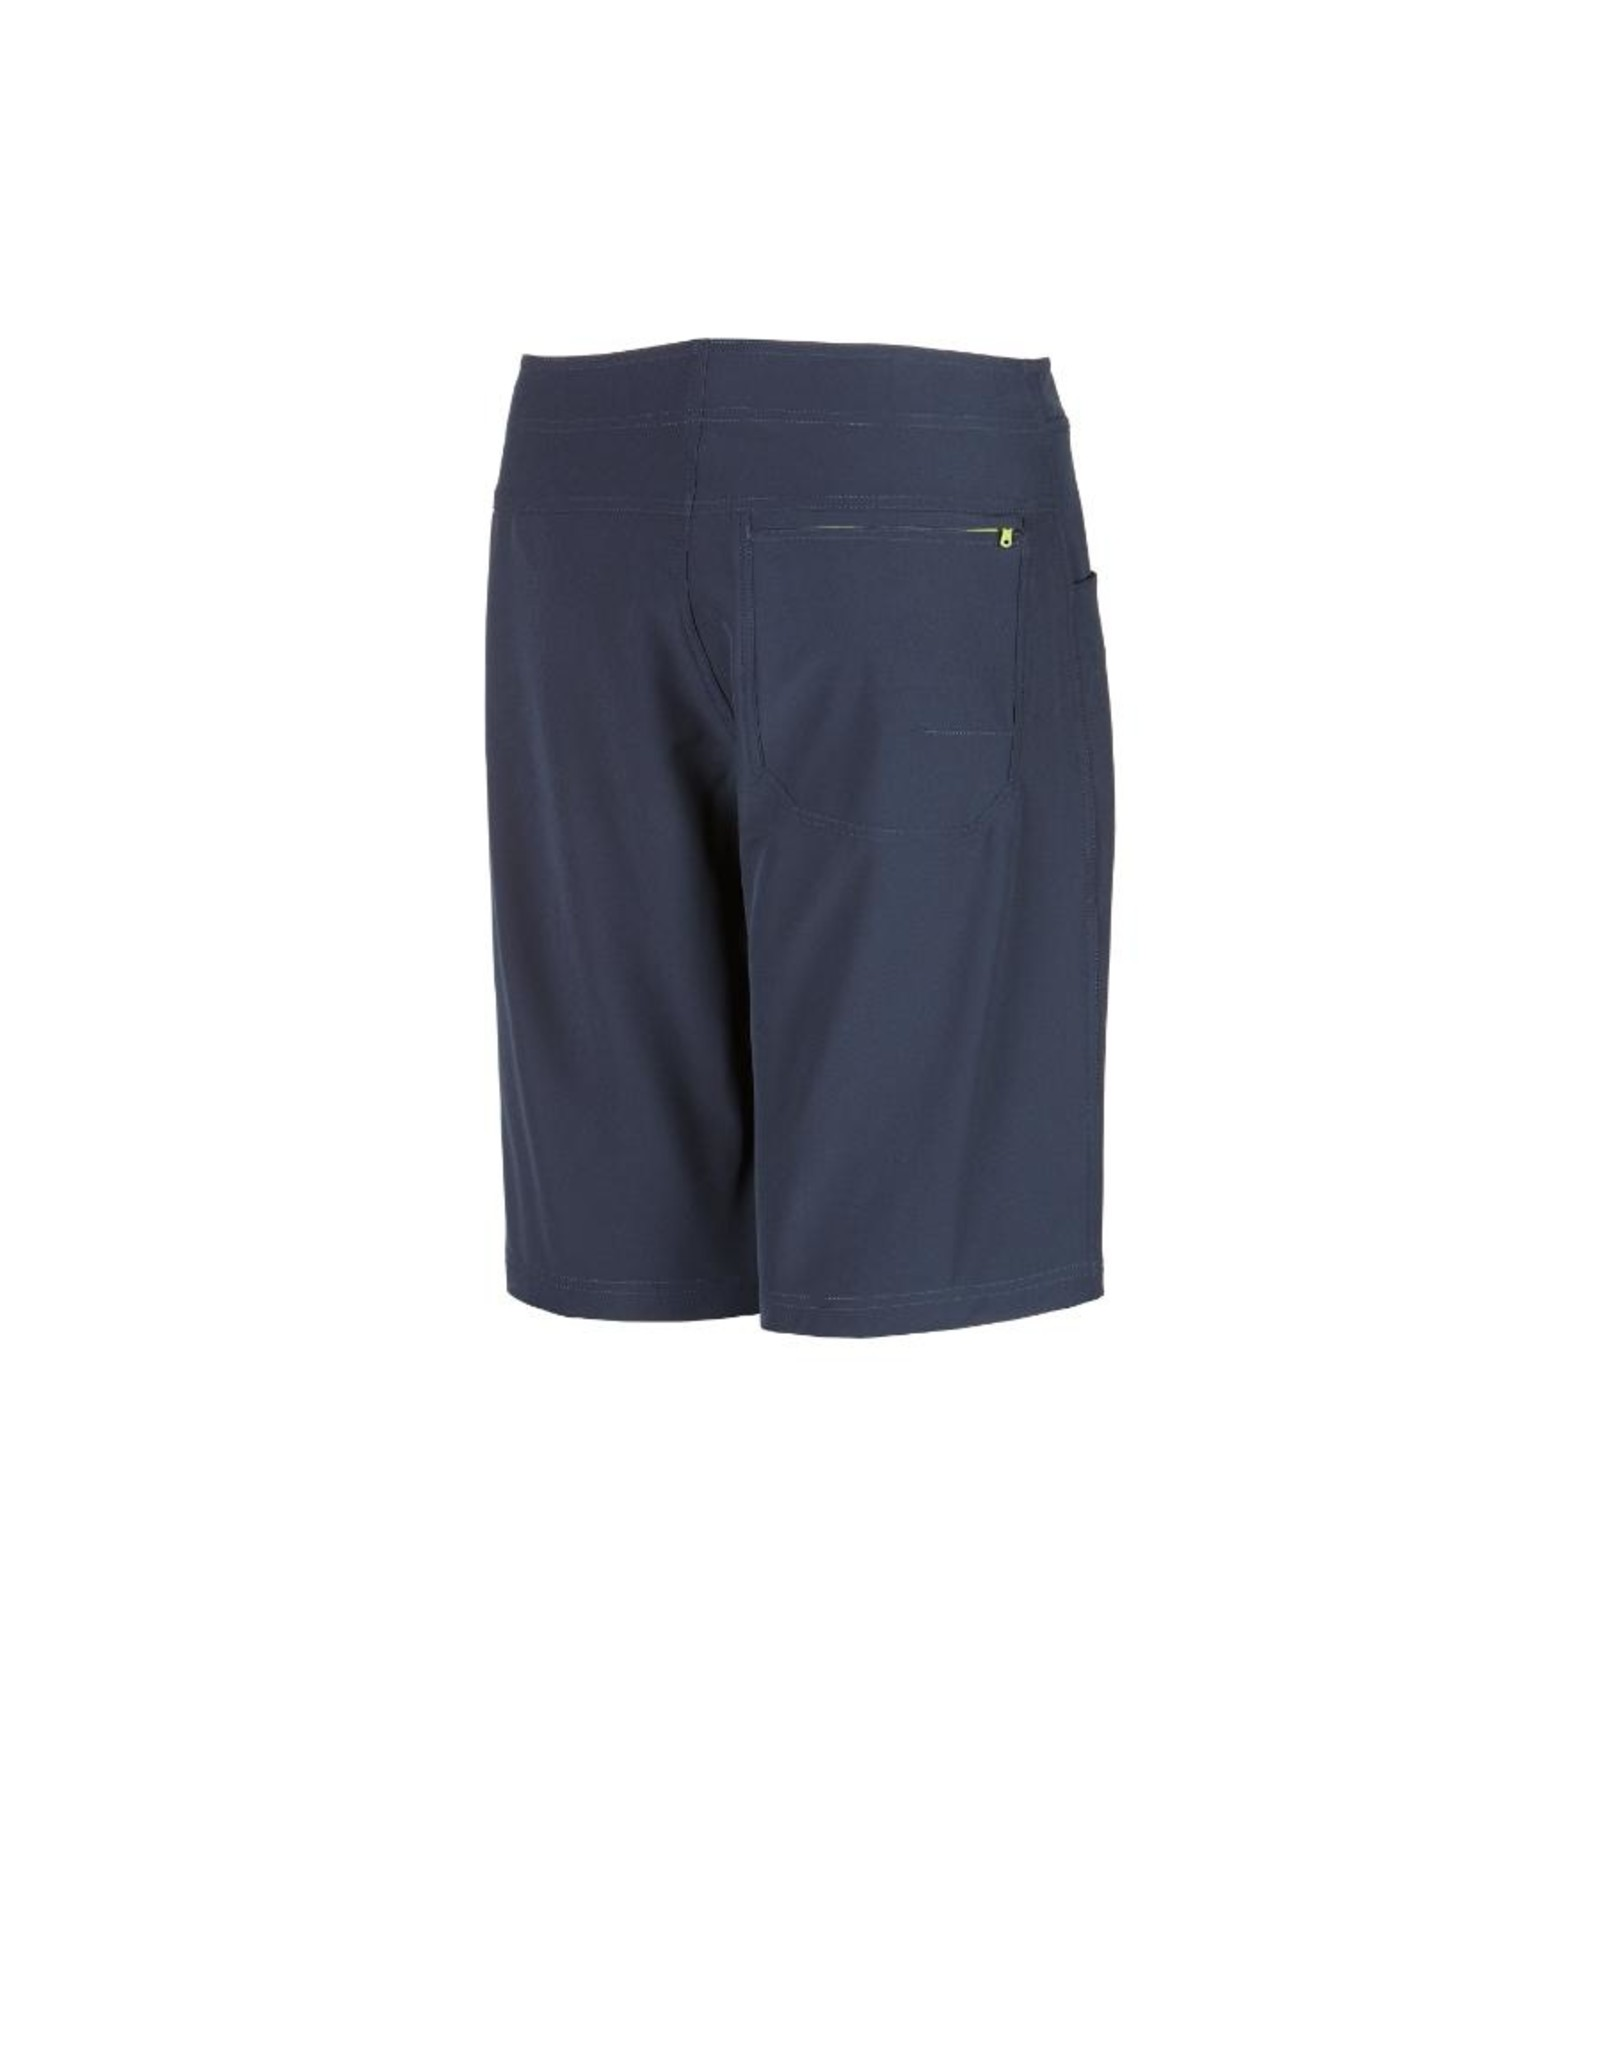 Immersion Research IR Mens Penstock Shorts